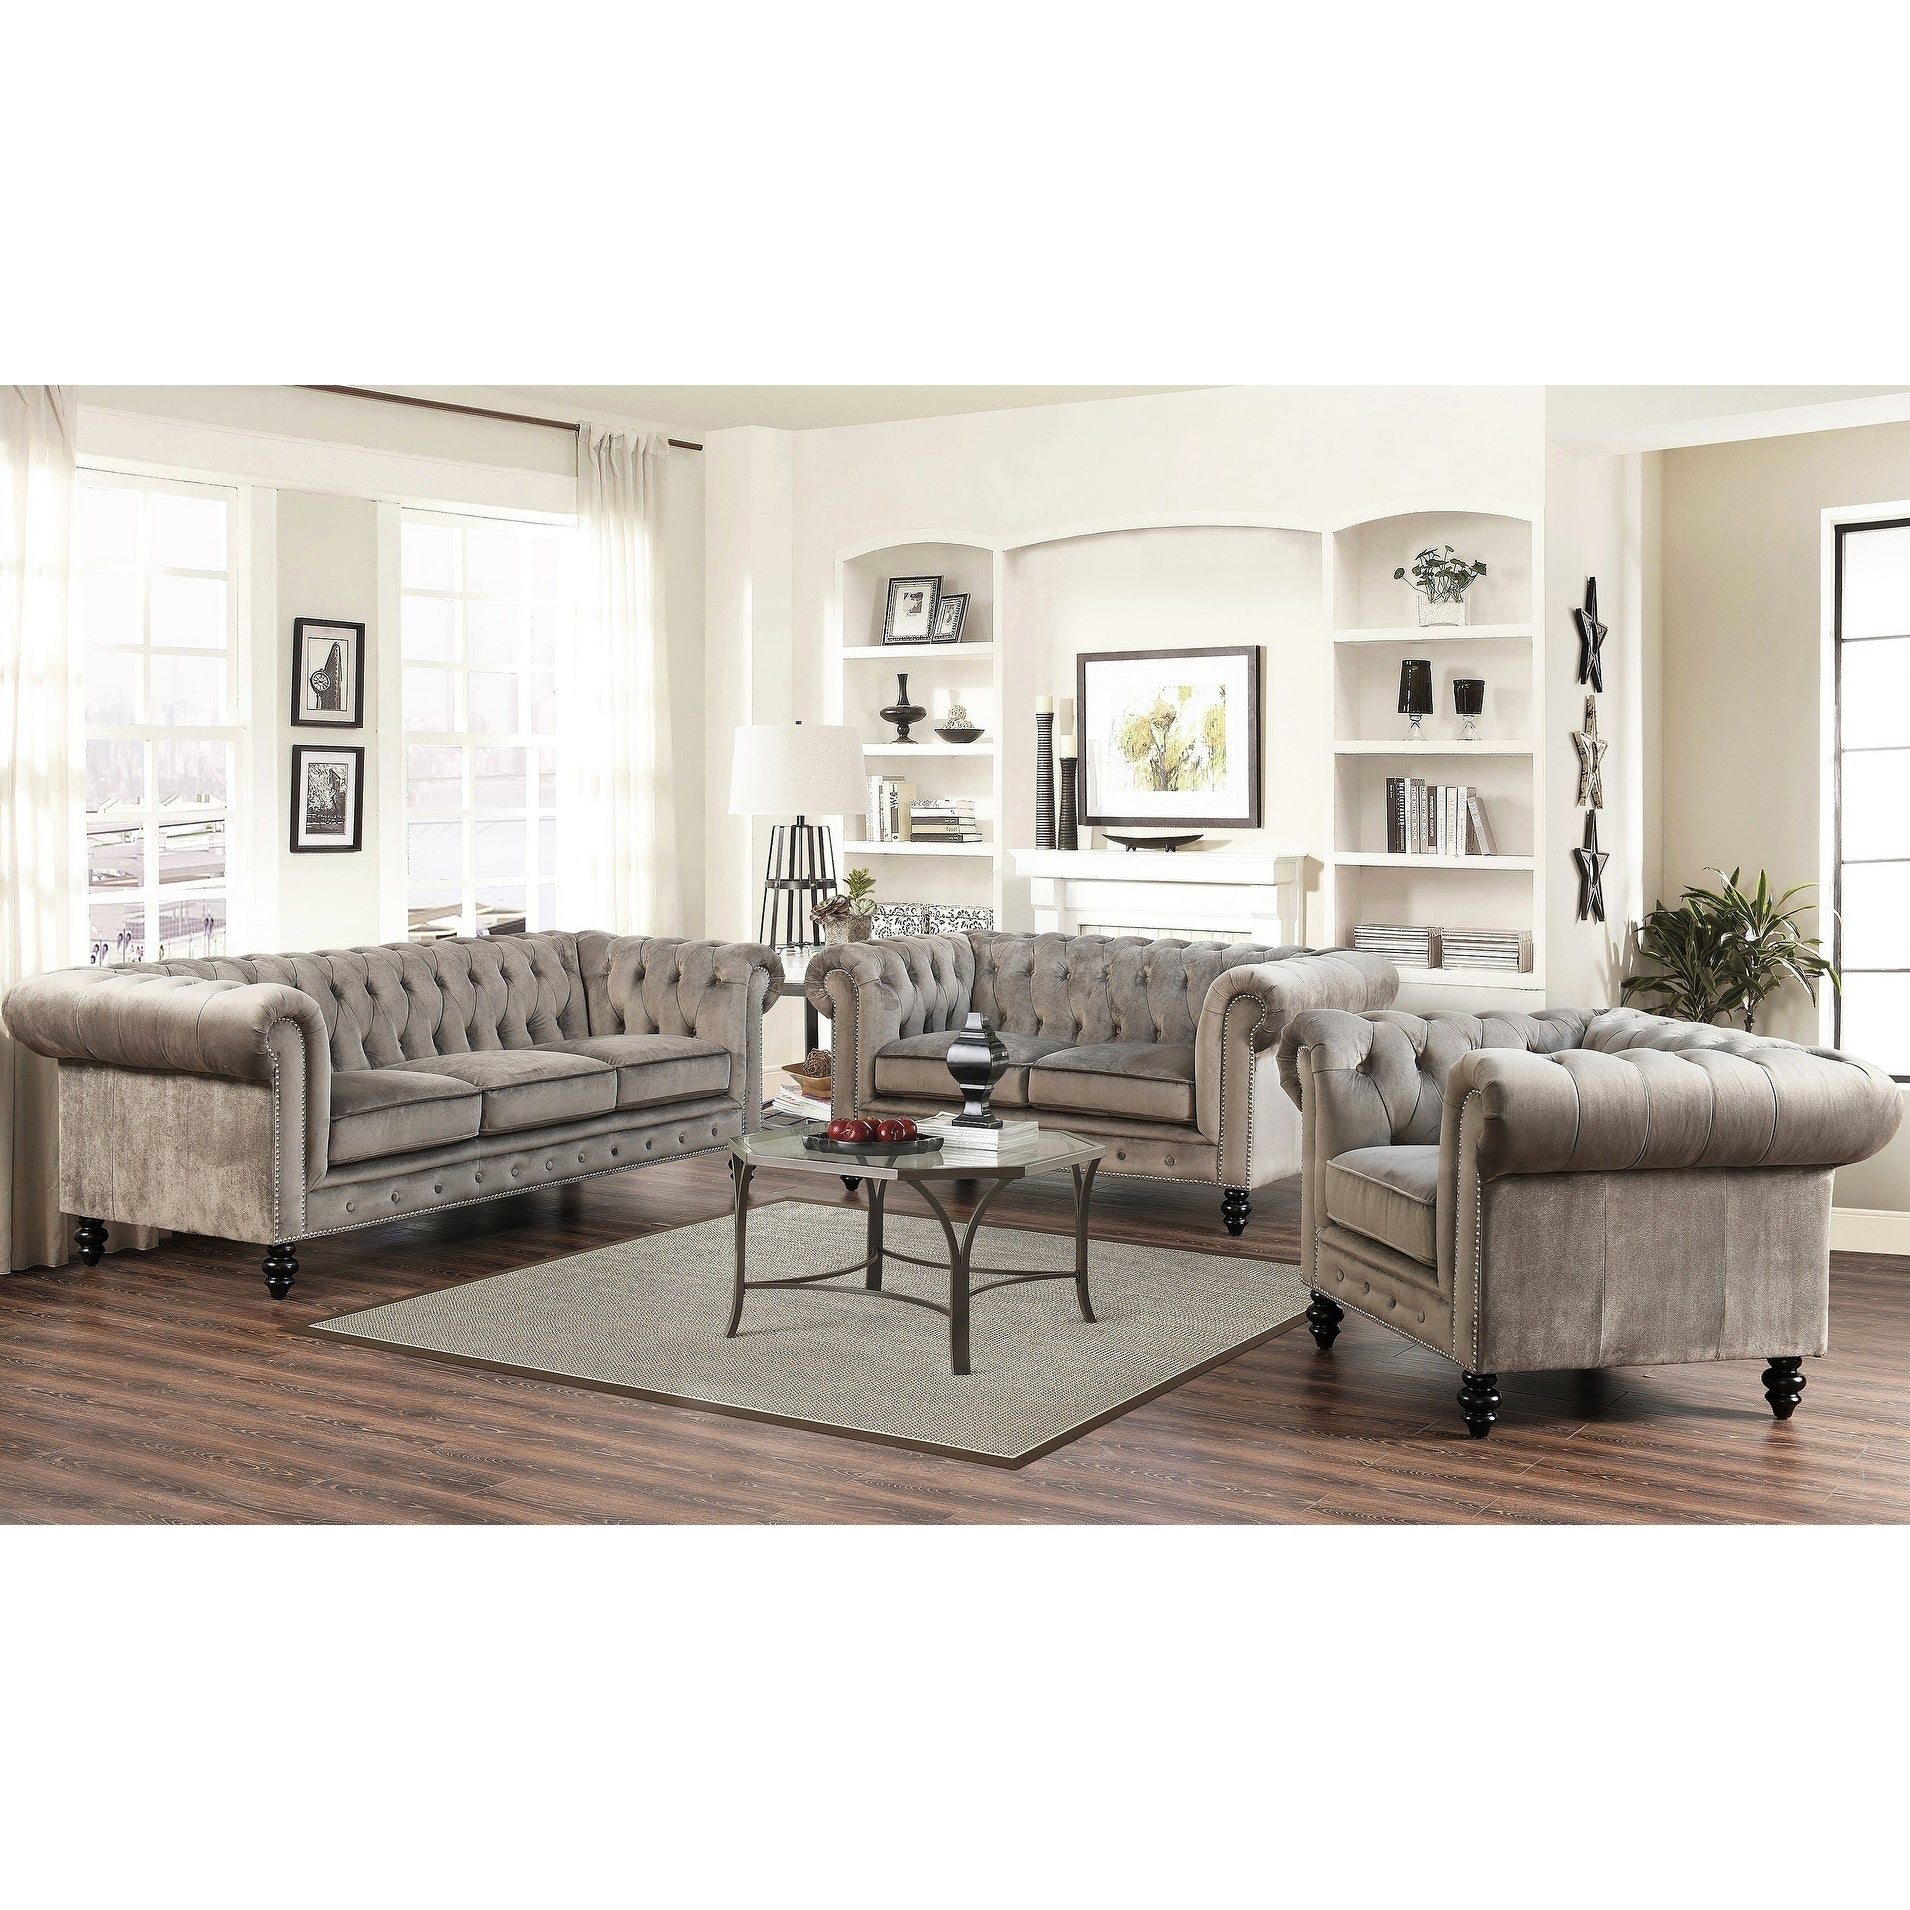 Gracewood Hollow Dib Grey Velvet 3 Piece Living Room Set regarding 11 Smart Designs of How to Make 3 Piece Living Room Set Cheap